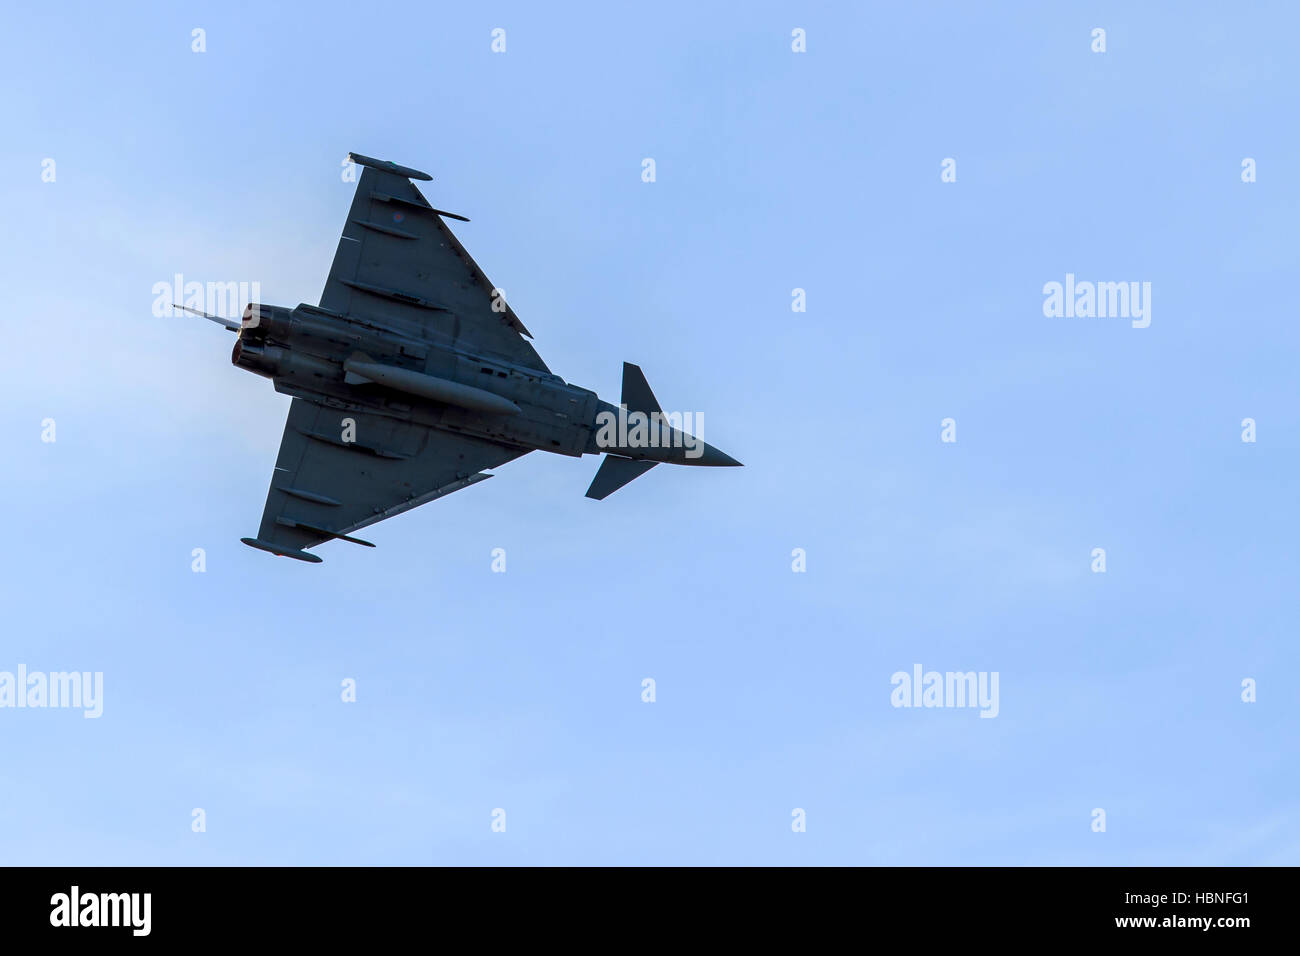 Eurofighter Typhoon Multirole fighter performing extreme manoeuvres at Southport airshow Stock Photo